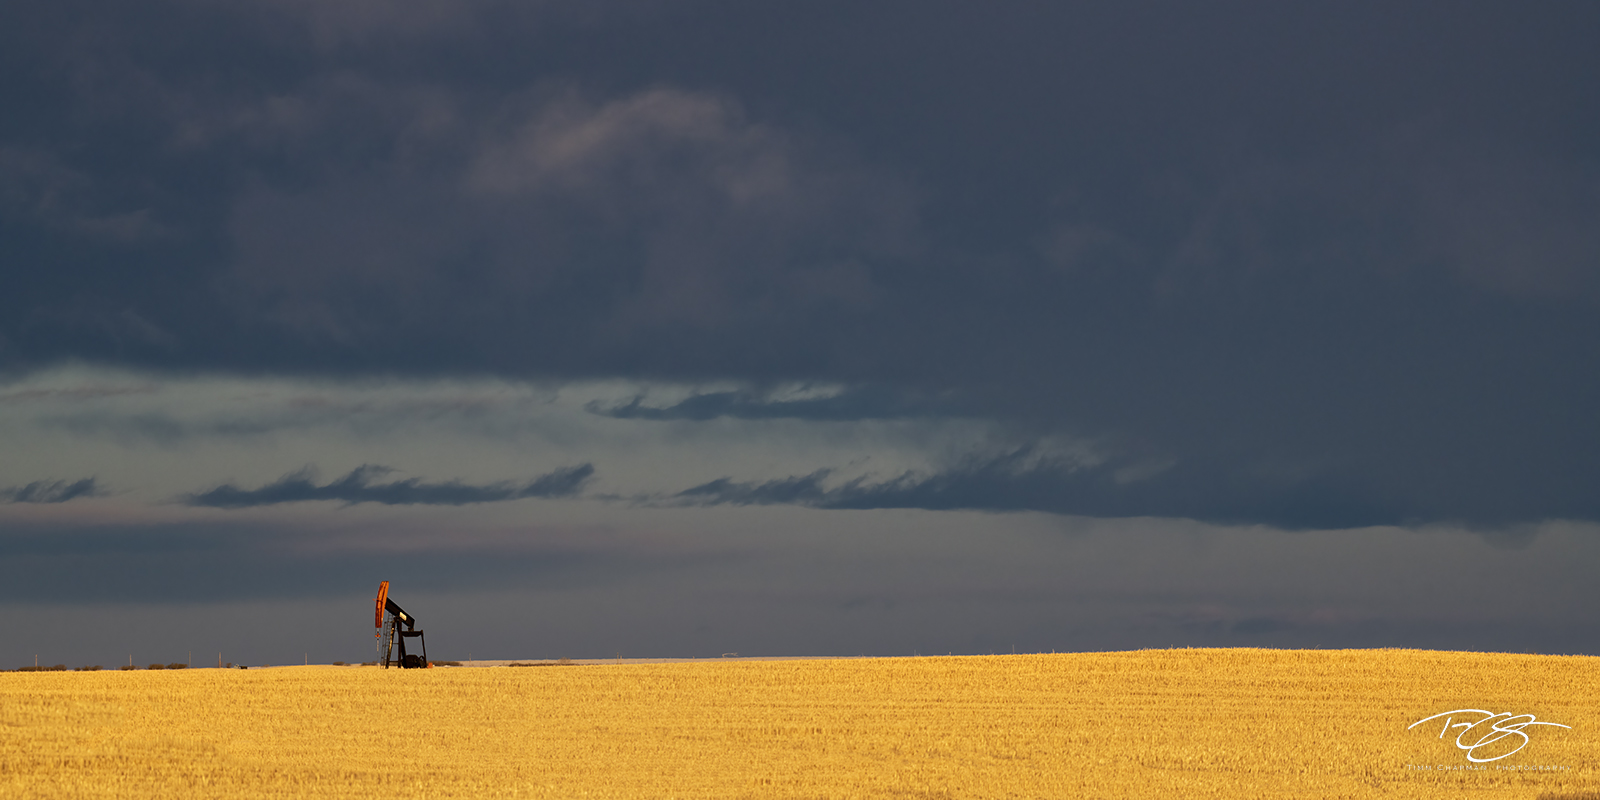 A lone pump jack mines for hydrocarbons beneath a threatening sky